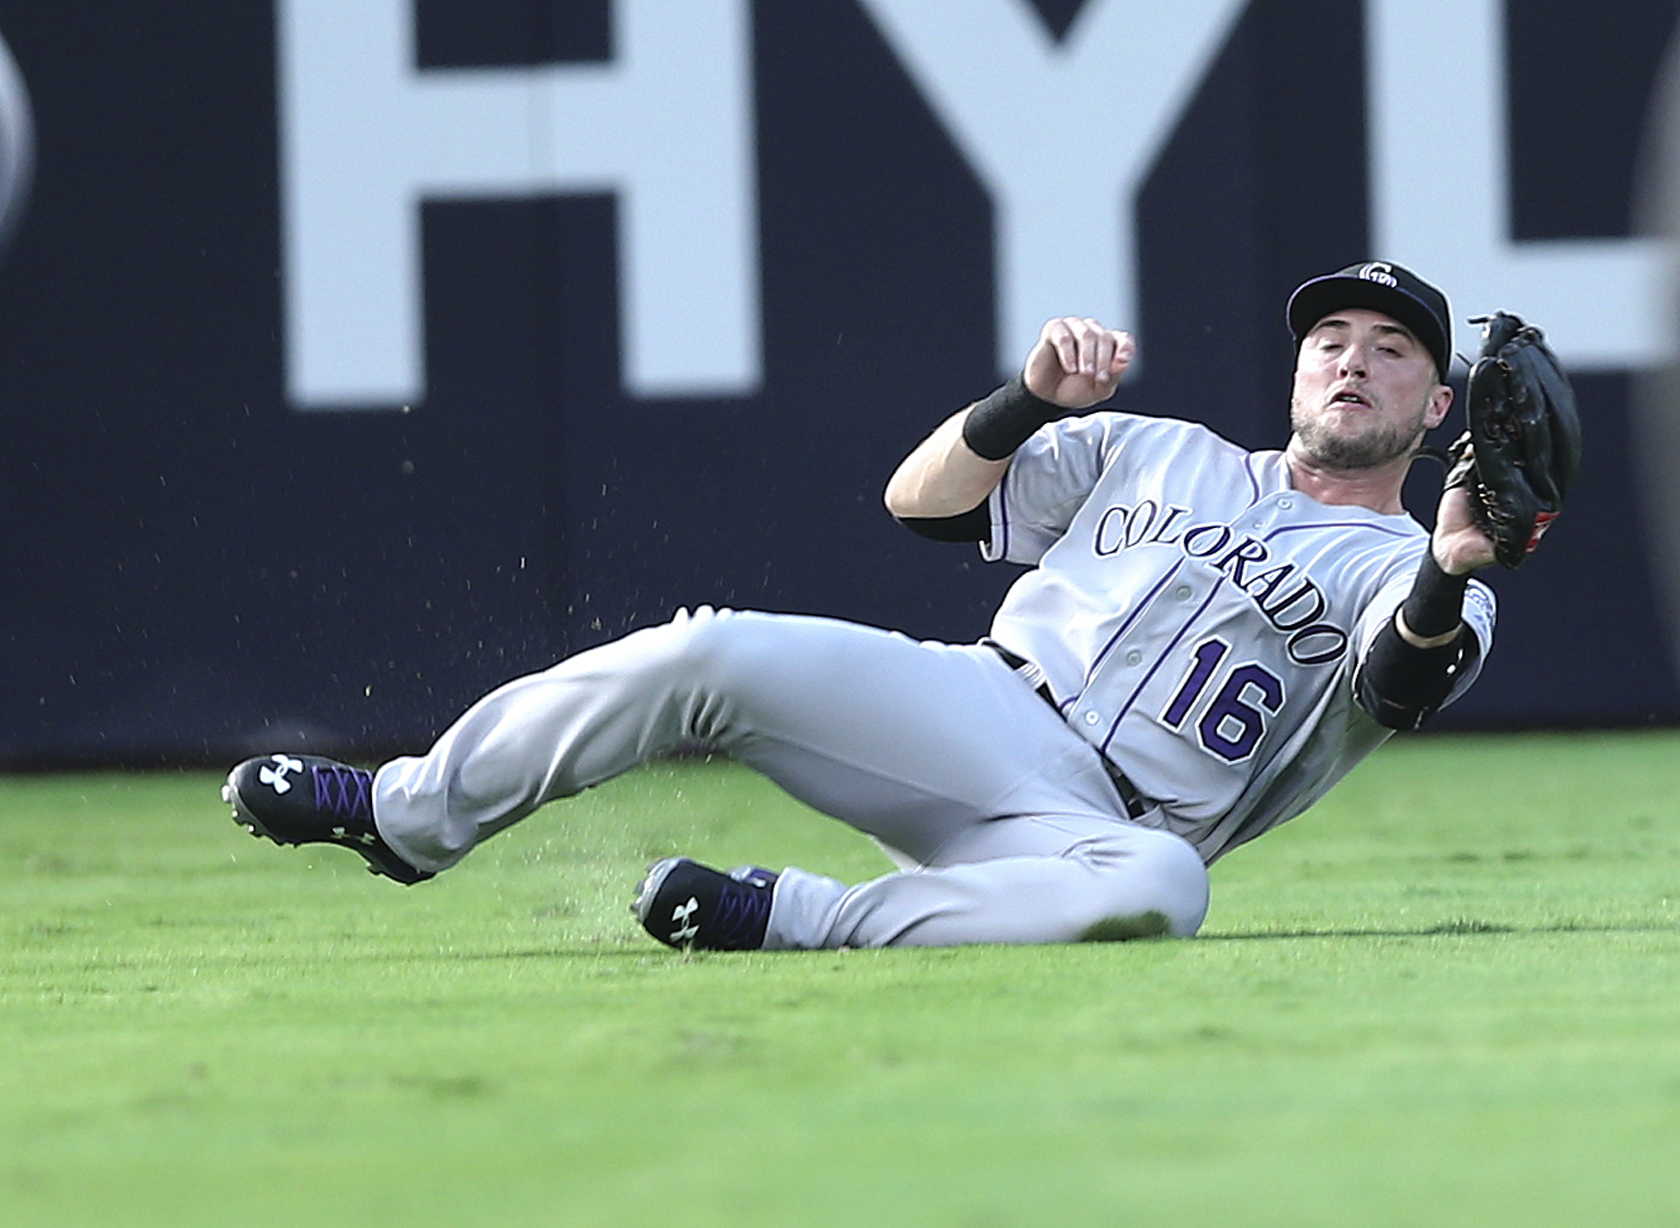 Colorado Rockies left fielder Kyle Parker makes a sliding catch to retire Atlanta Braves' Adonis Garcia in the second inning of a baseball game Monday, Aug. 24, 2015, in Atlanta. (AP Photo/John Bazemore)